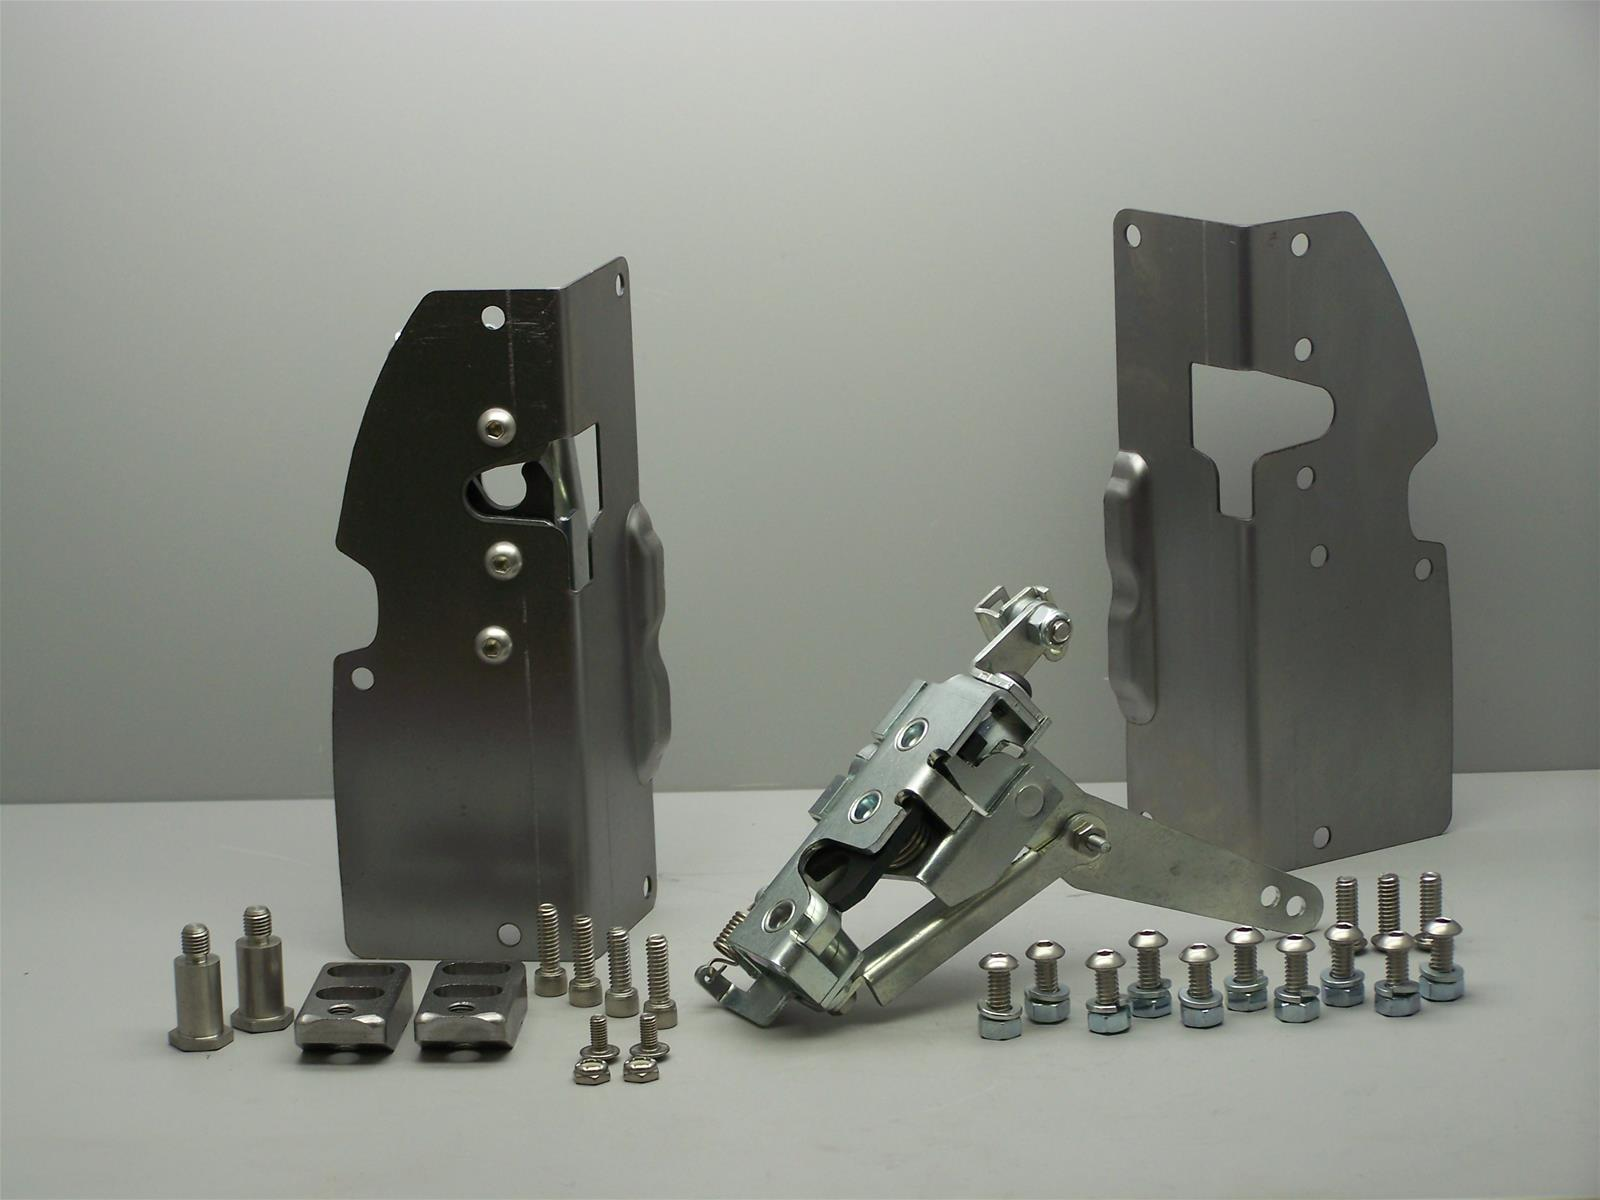 Trique manufacturing altman easy latch kits ael ft4852 for 1940 ford door latch